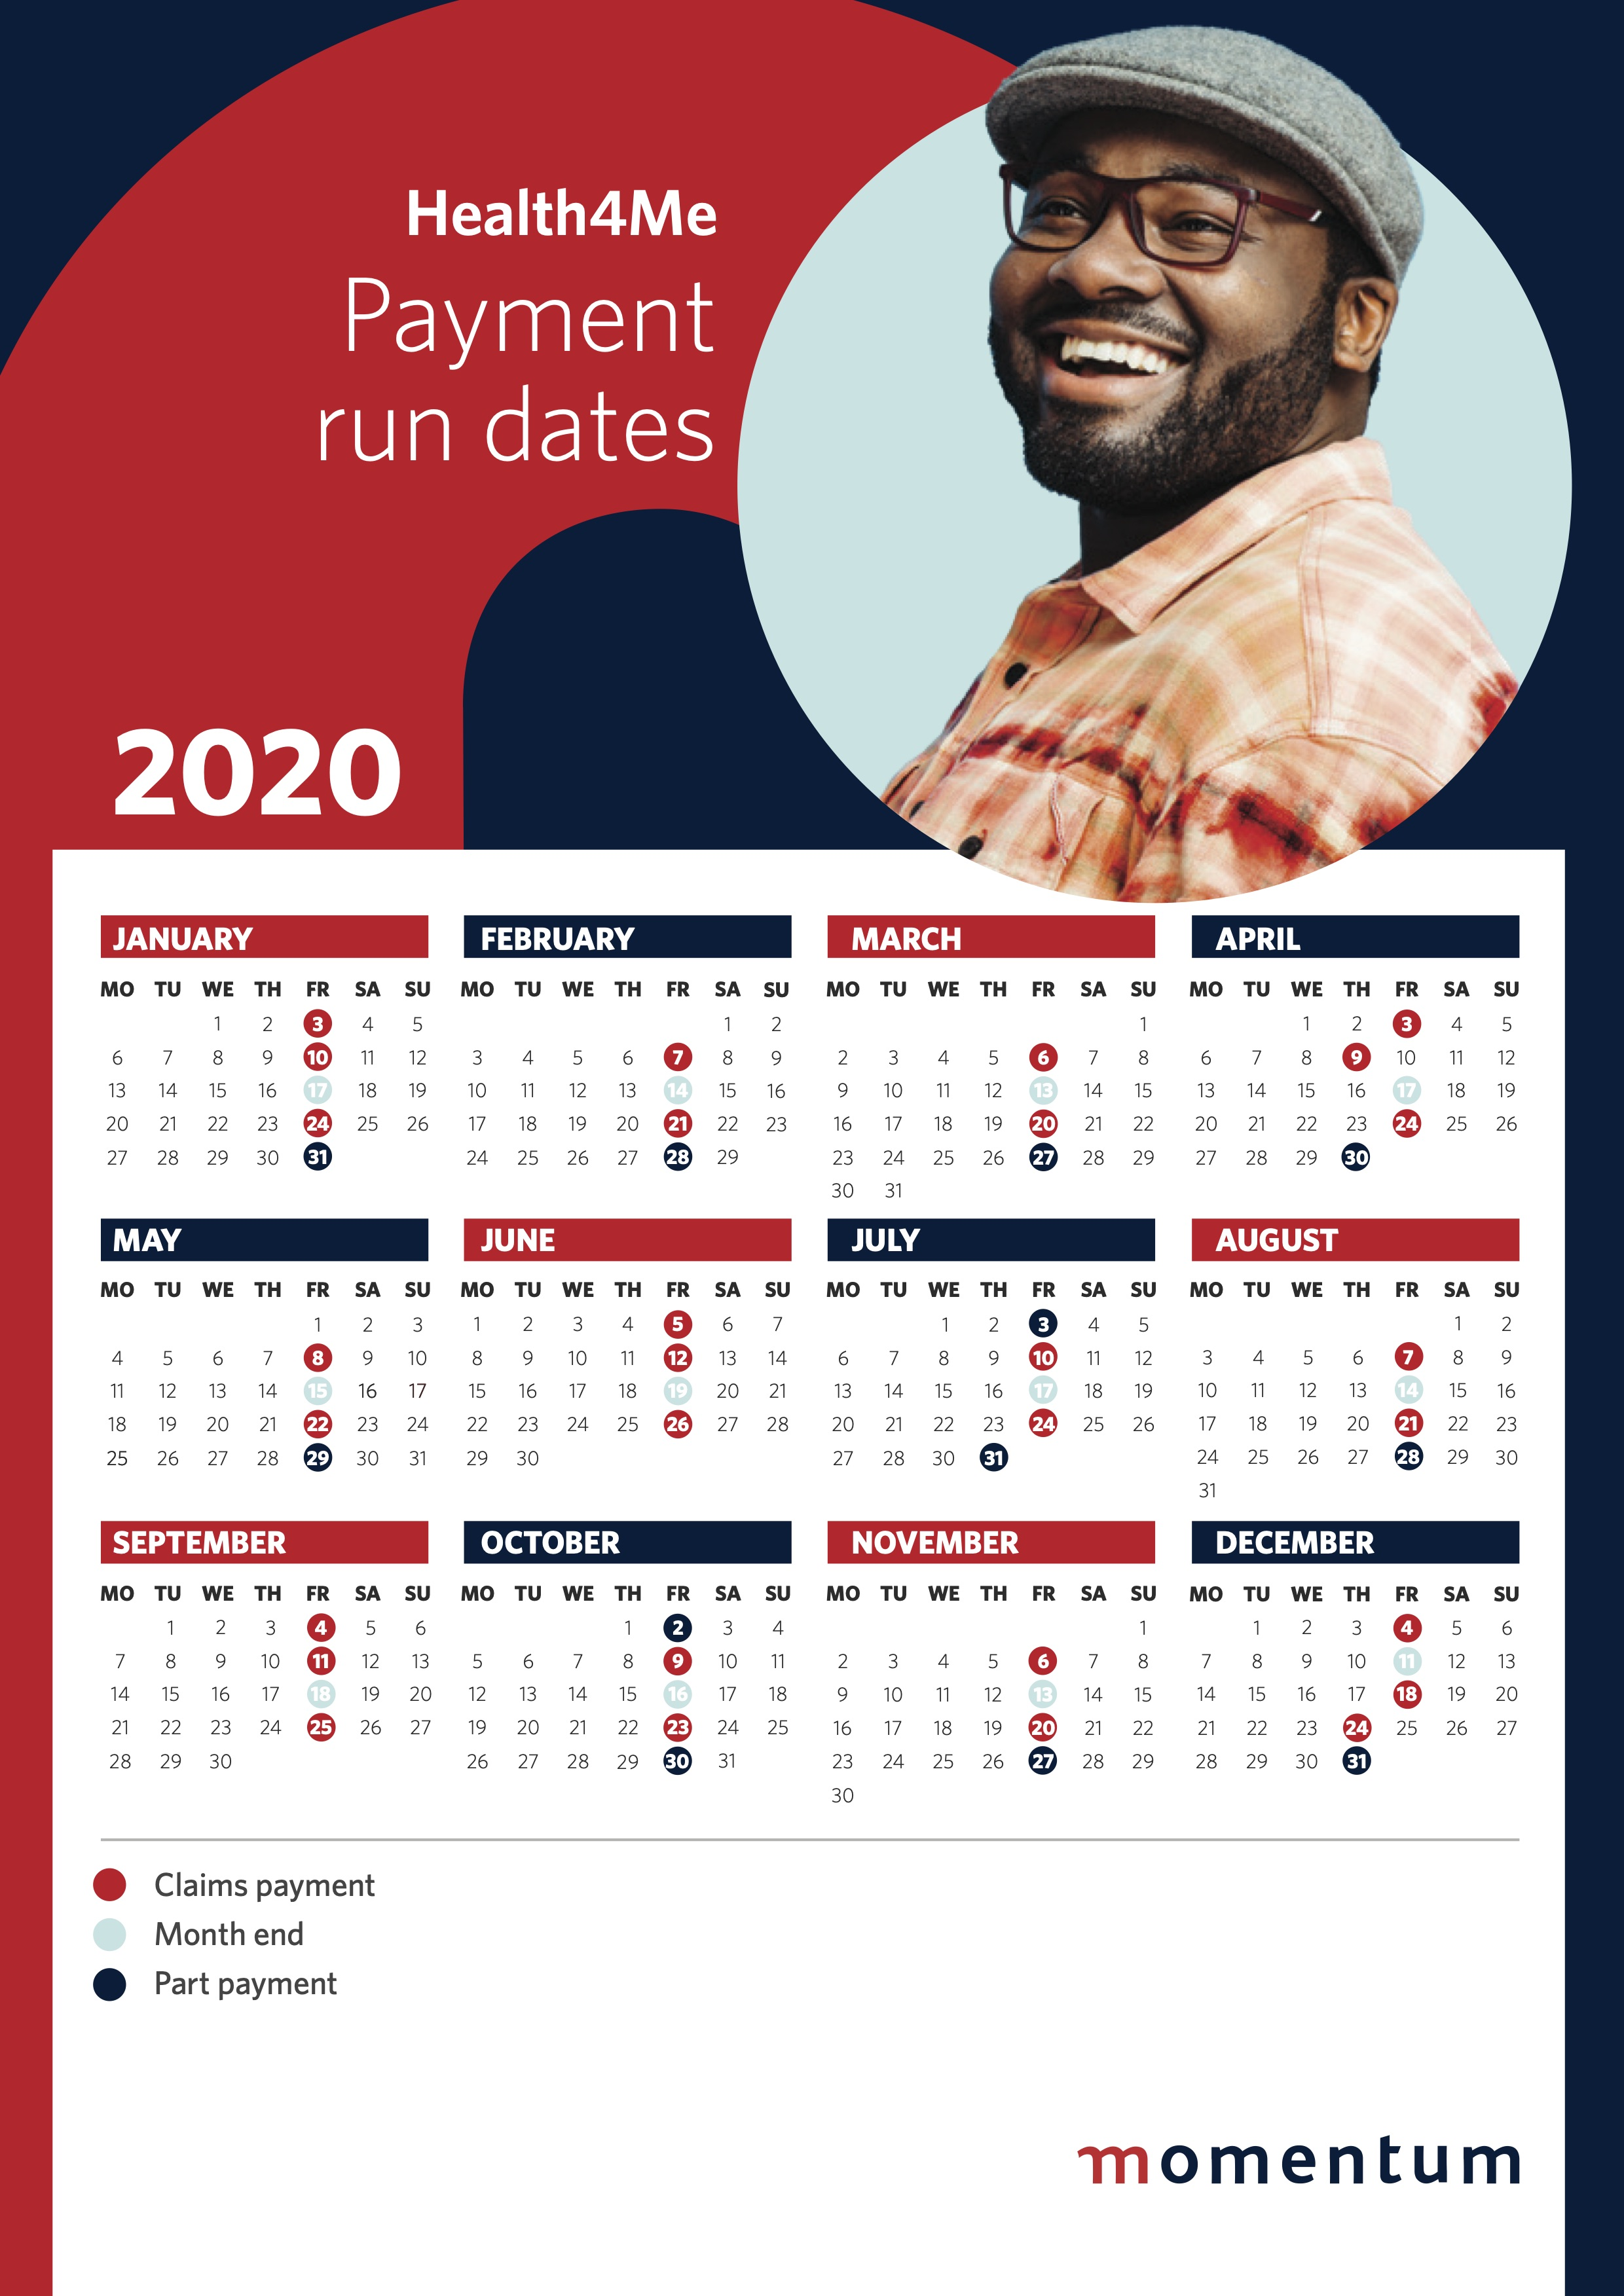 Health4Me Payment Run Dates 2020